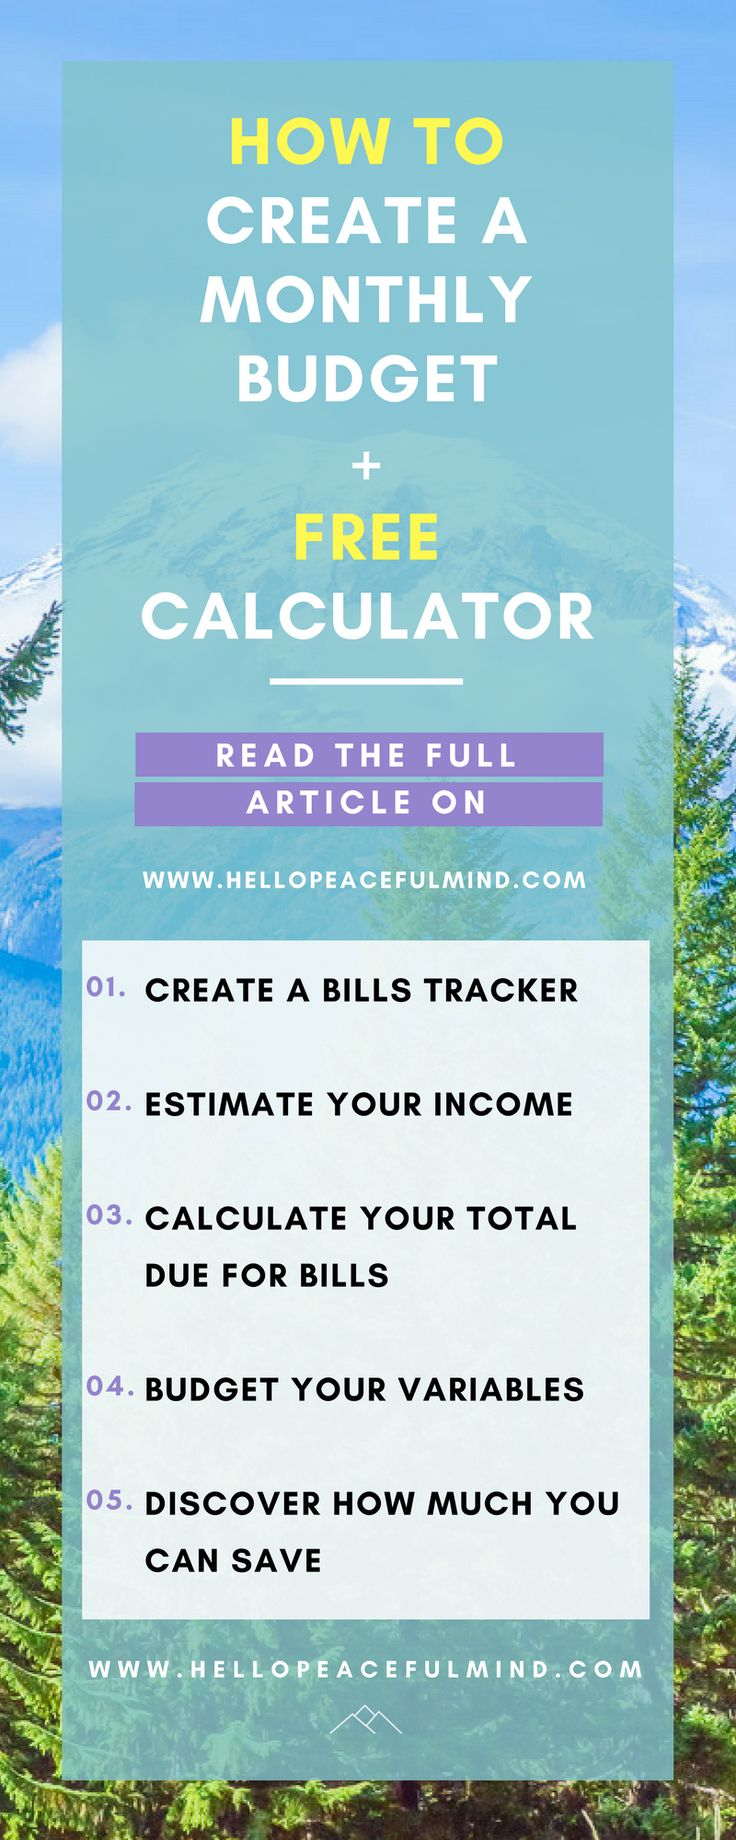 Download your FREE monthly budget calculator to easily plan your finances and find out how much you can save every month. Head over to www.HelloPeacefulMind.com to download it!